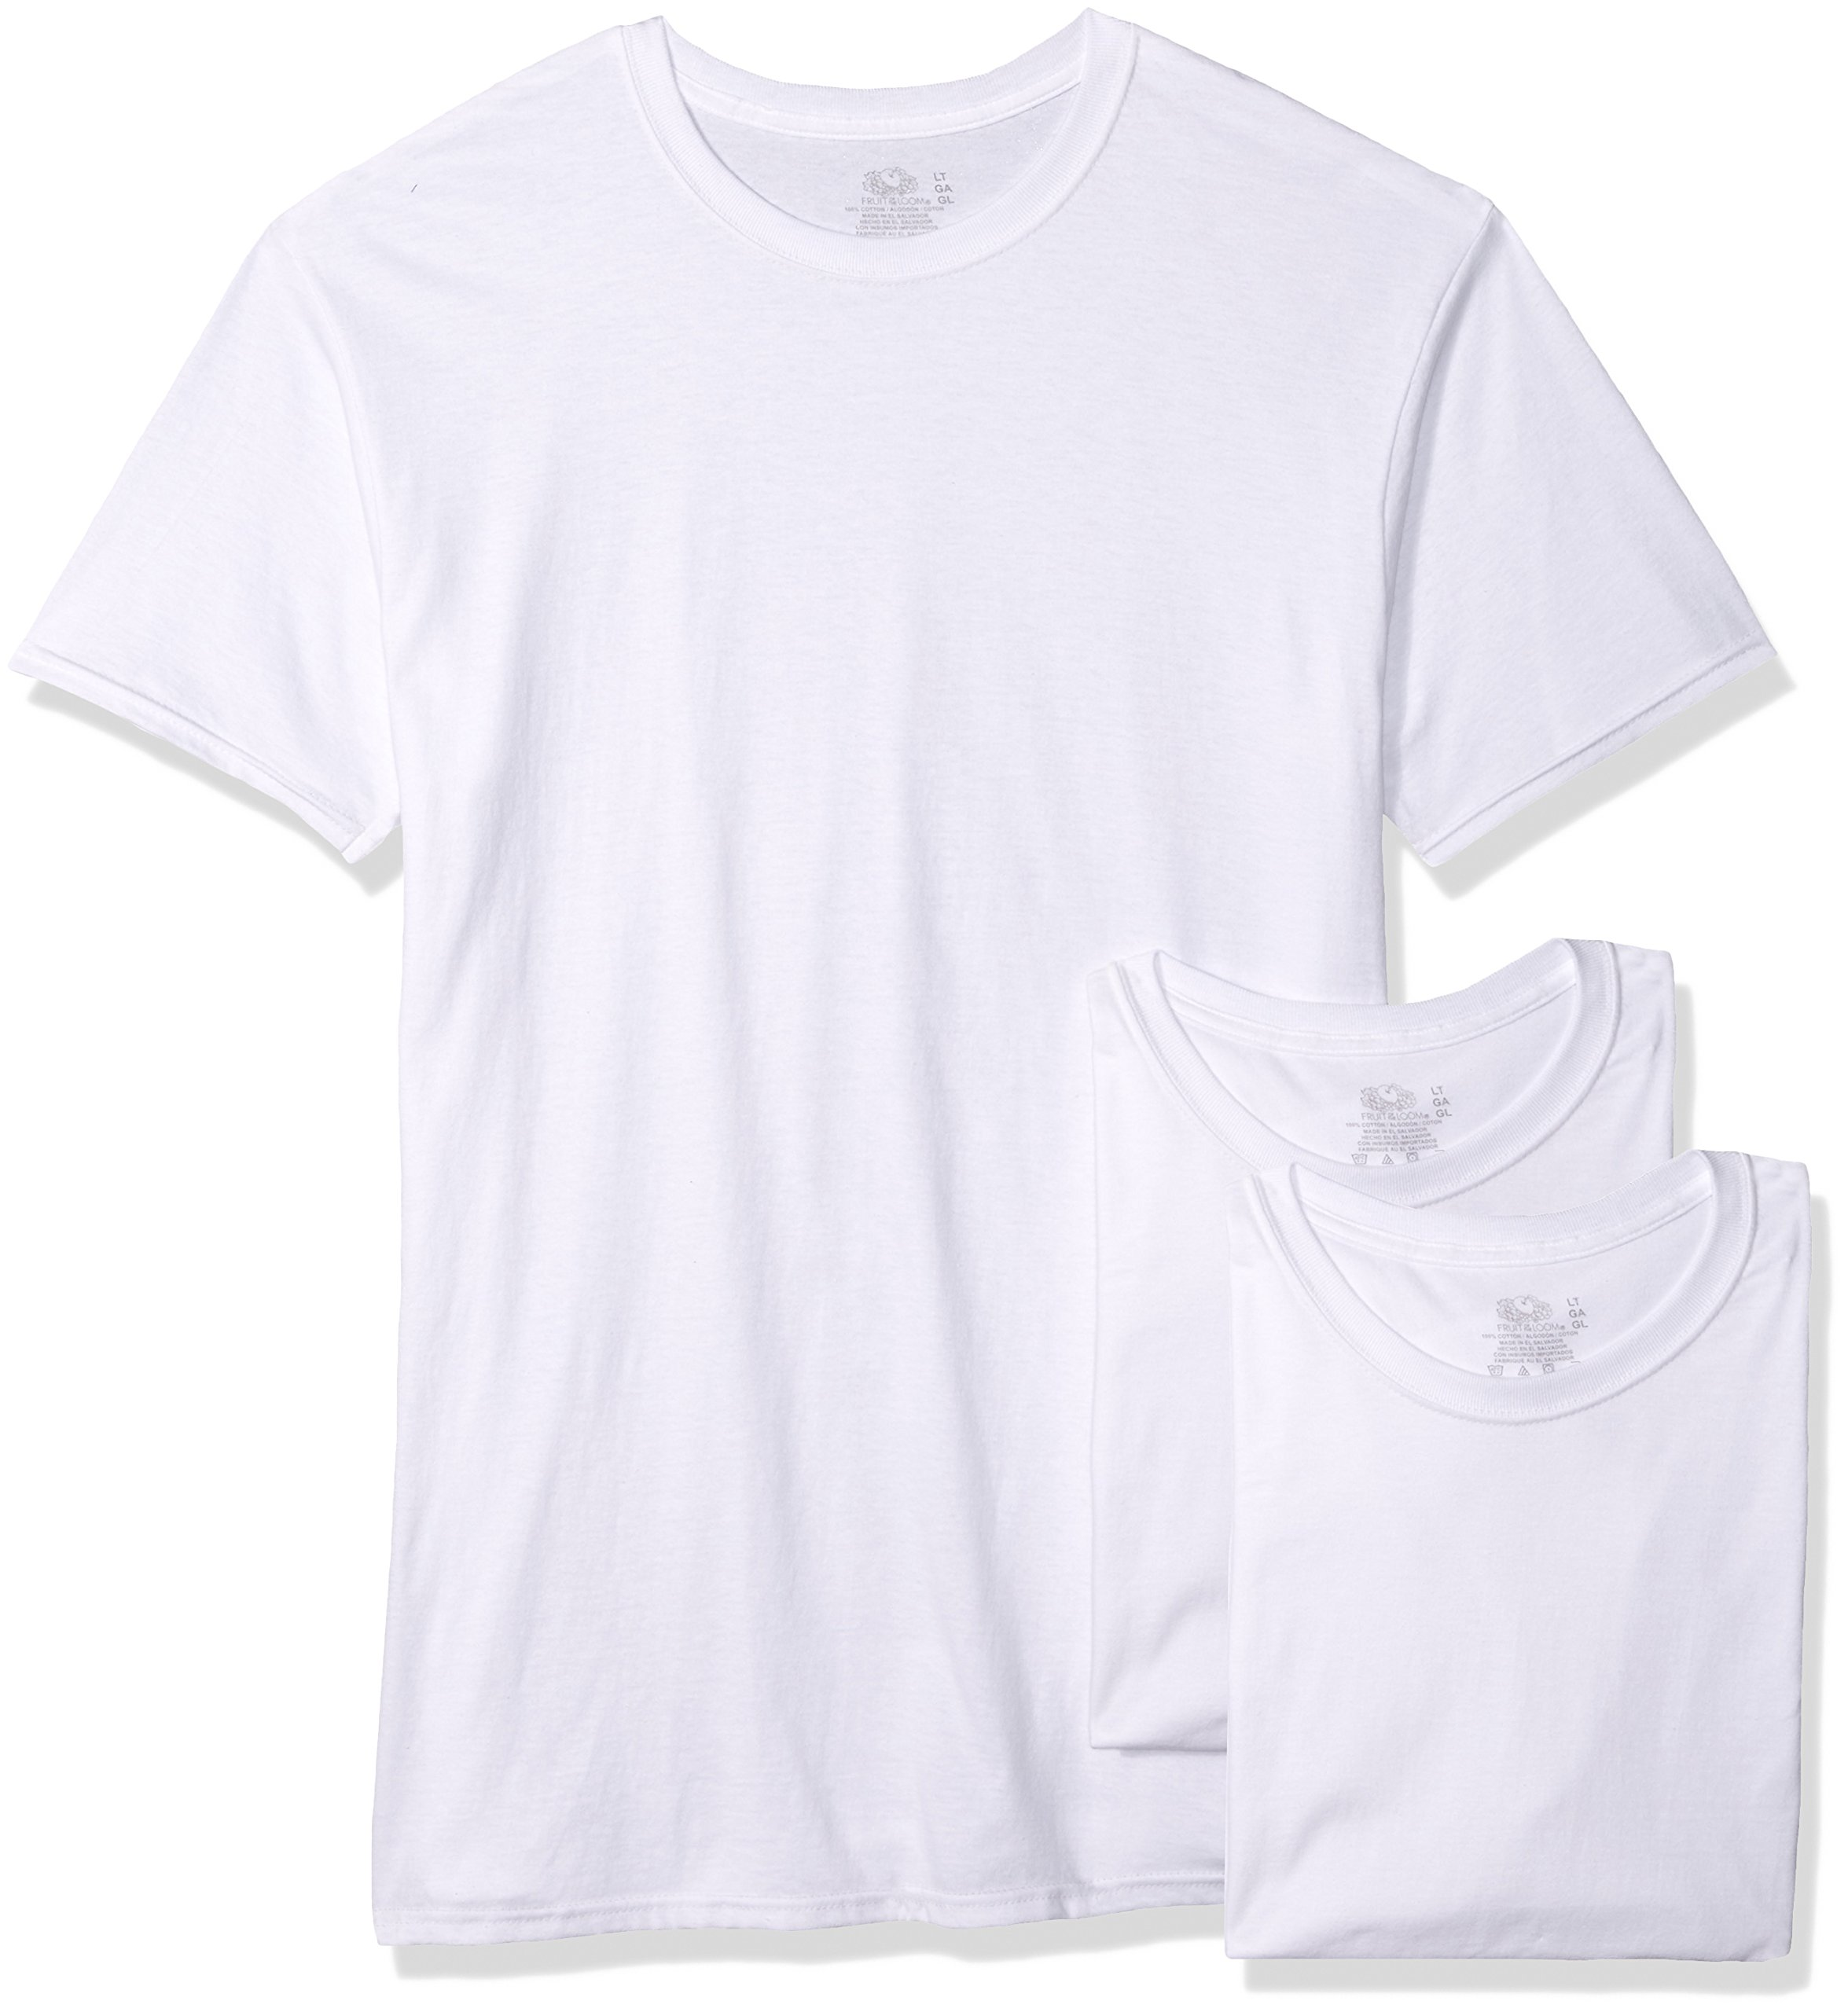 Fruit of the Loom Men's 3-Pack Tall Size Crew-Neck T-Shirt, White, LT